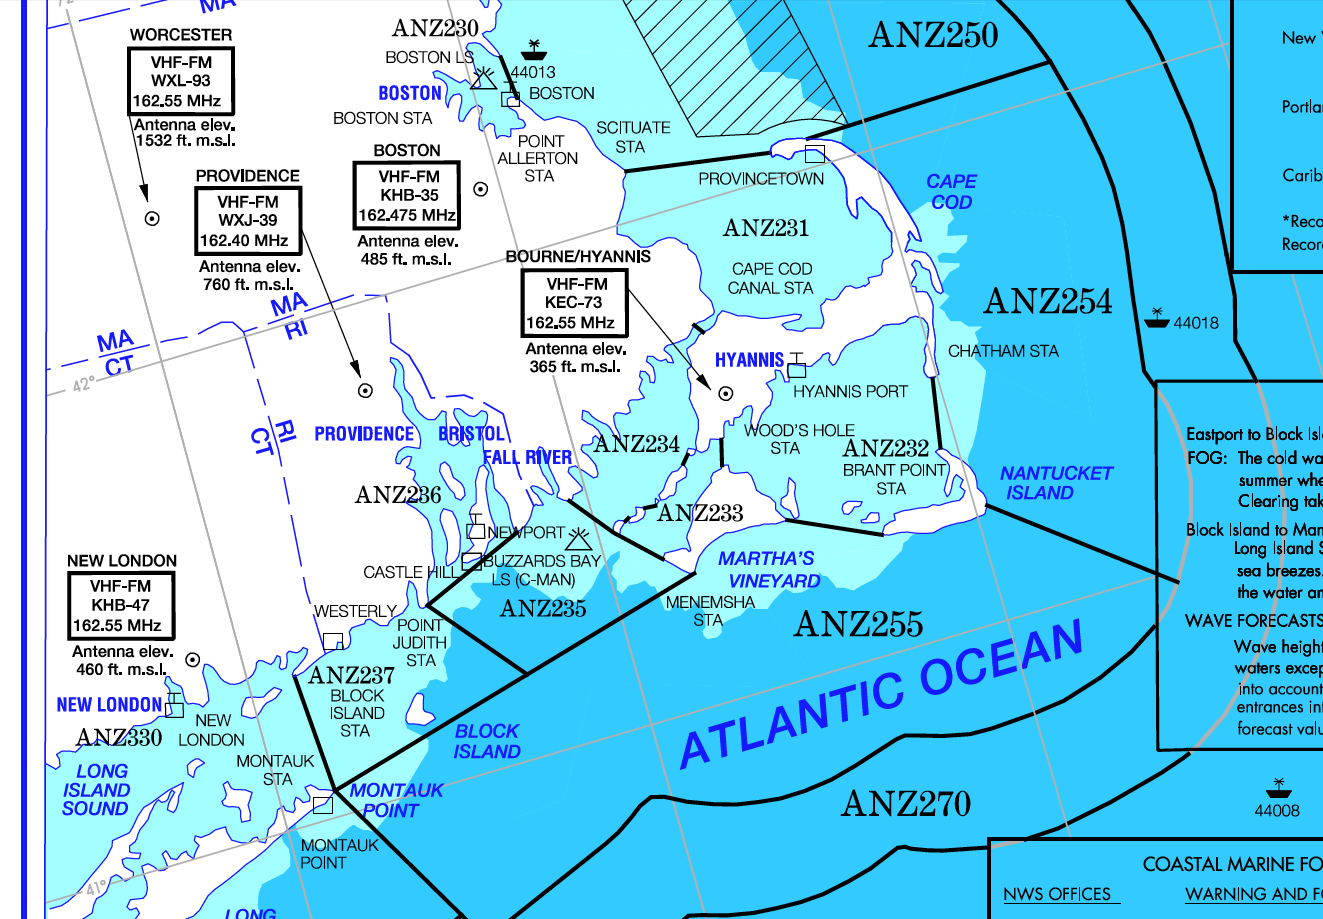 David Burch Navigation Blog: Marine Weather Services Chart — How to